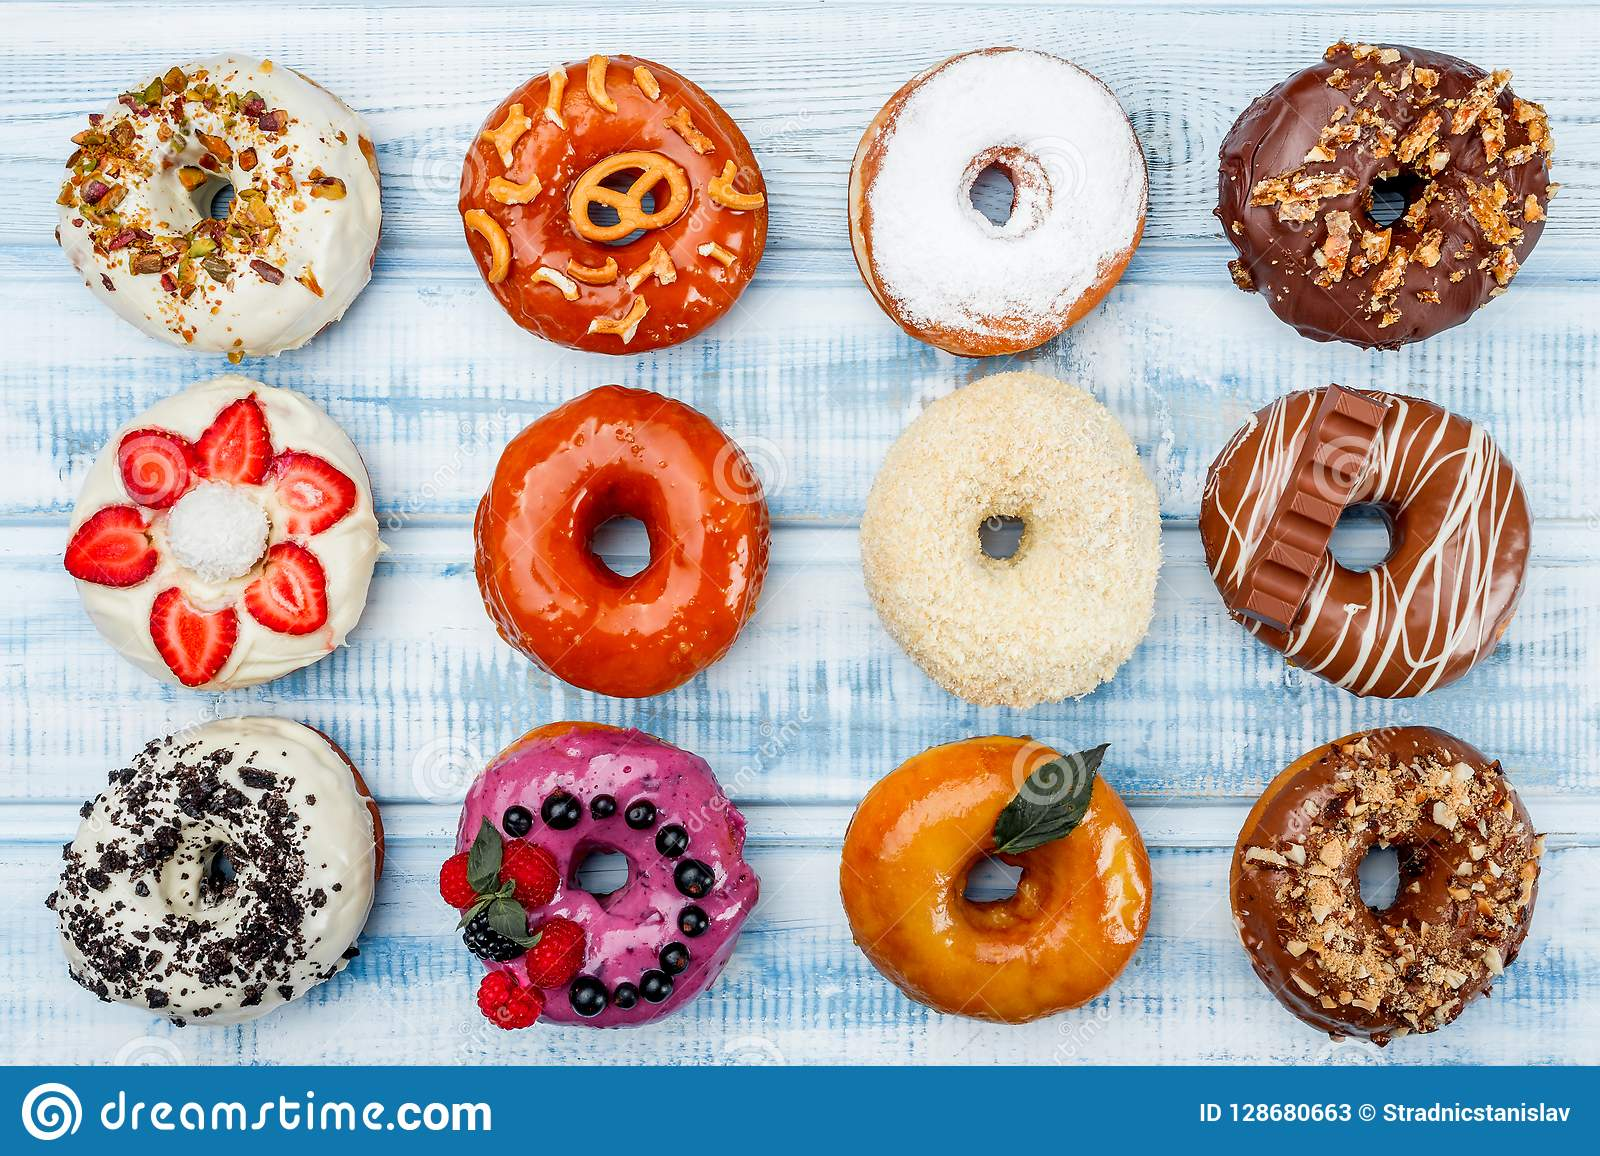 Donuts In assortment, on old wood background. Top view. Space for text